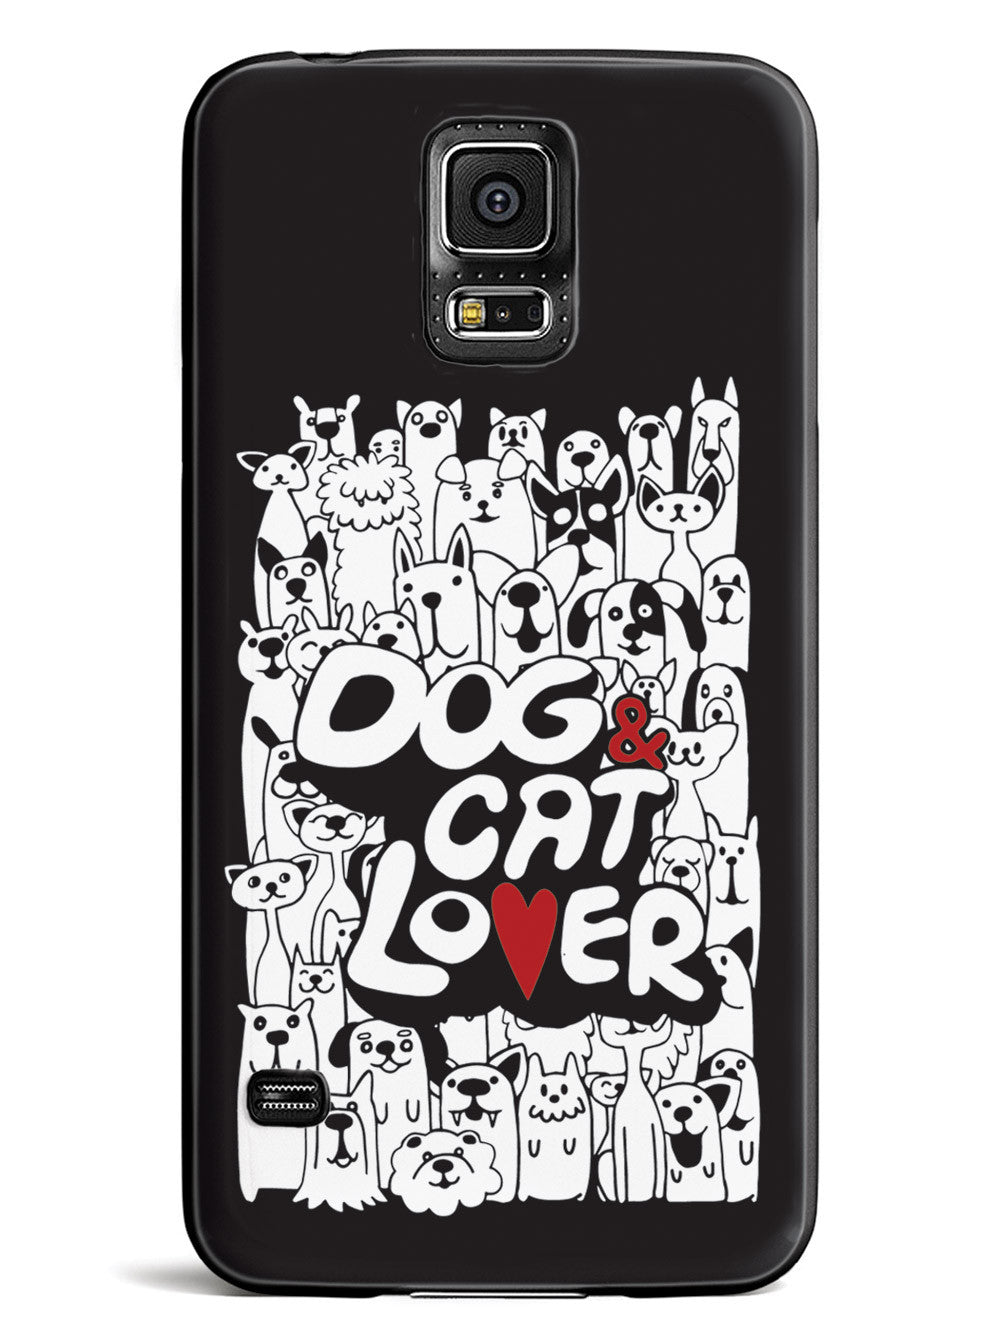 Dog & Cat Lover - Black Case